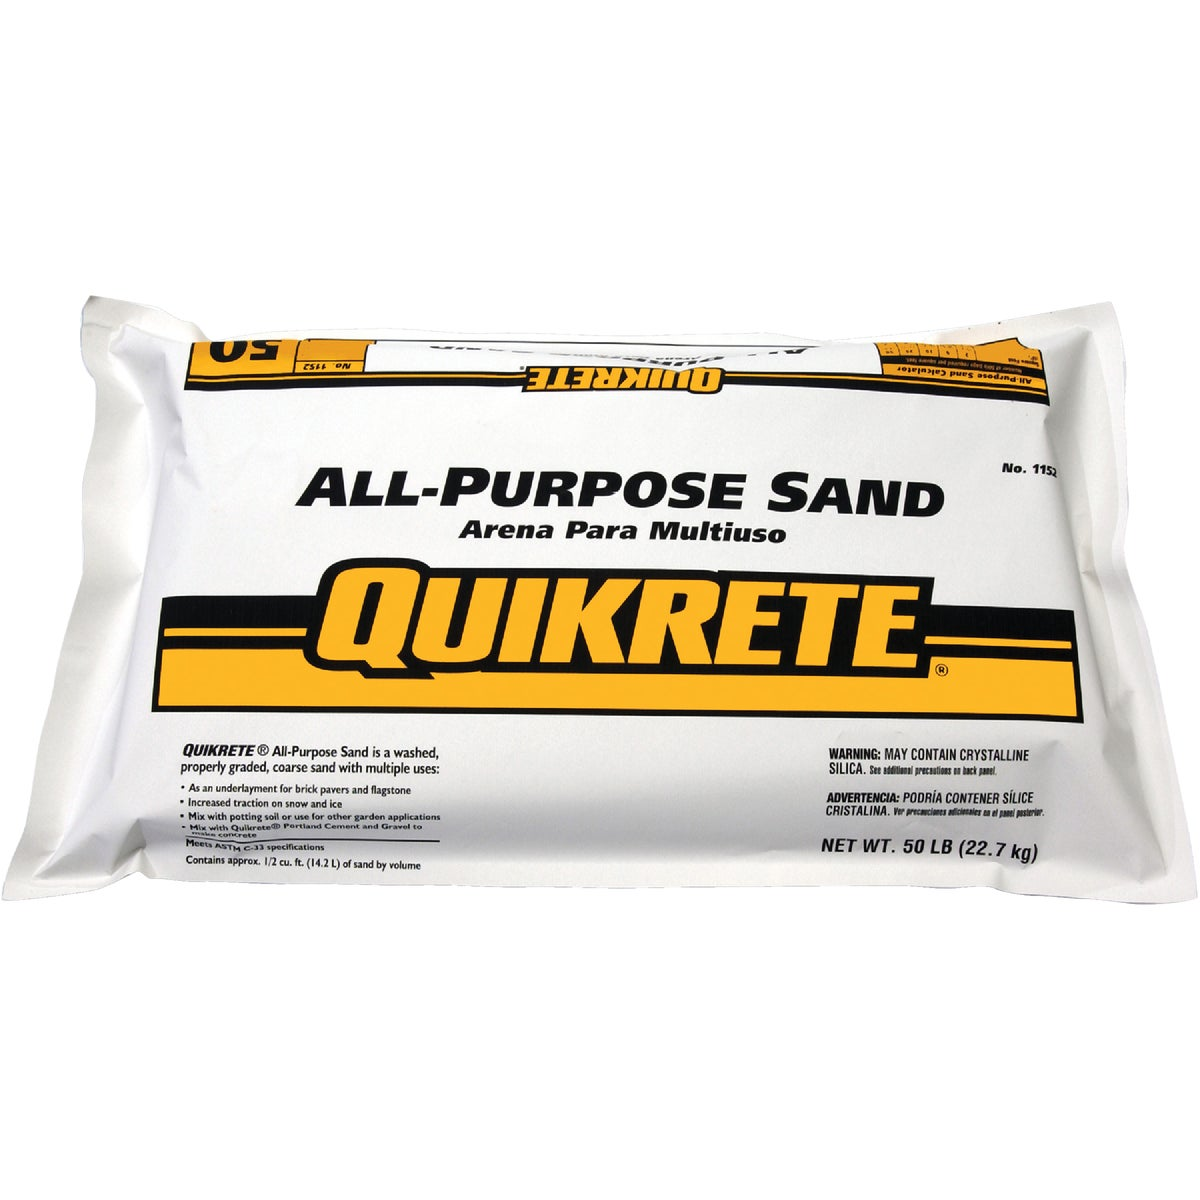 Quikrete 50LB ALL-PURPOSE SAND 1152-53